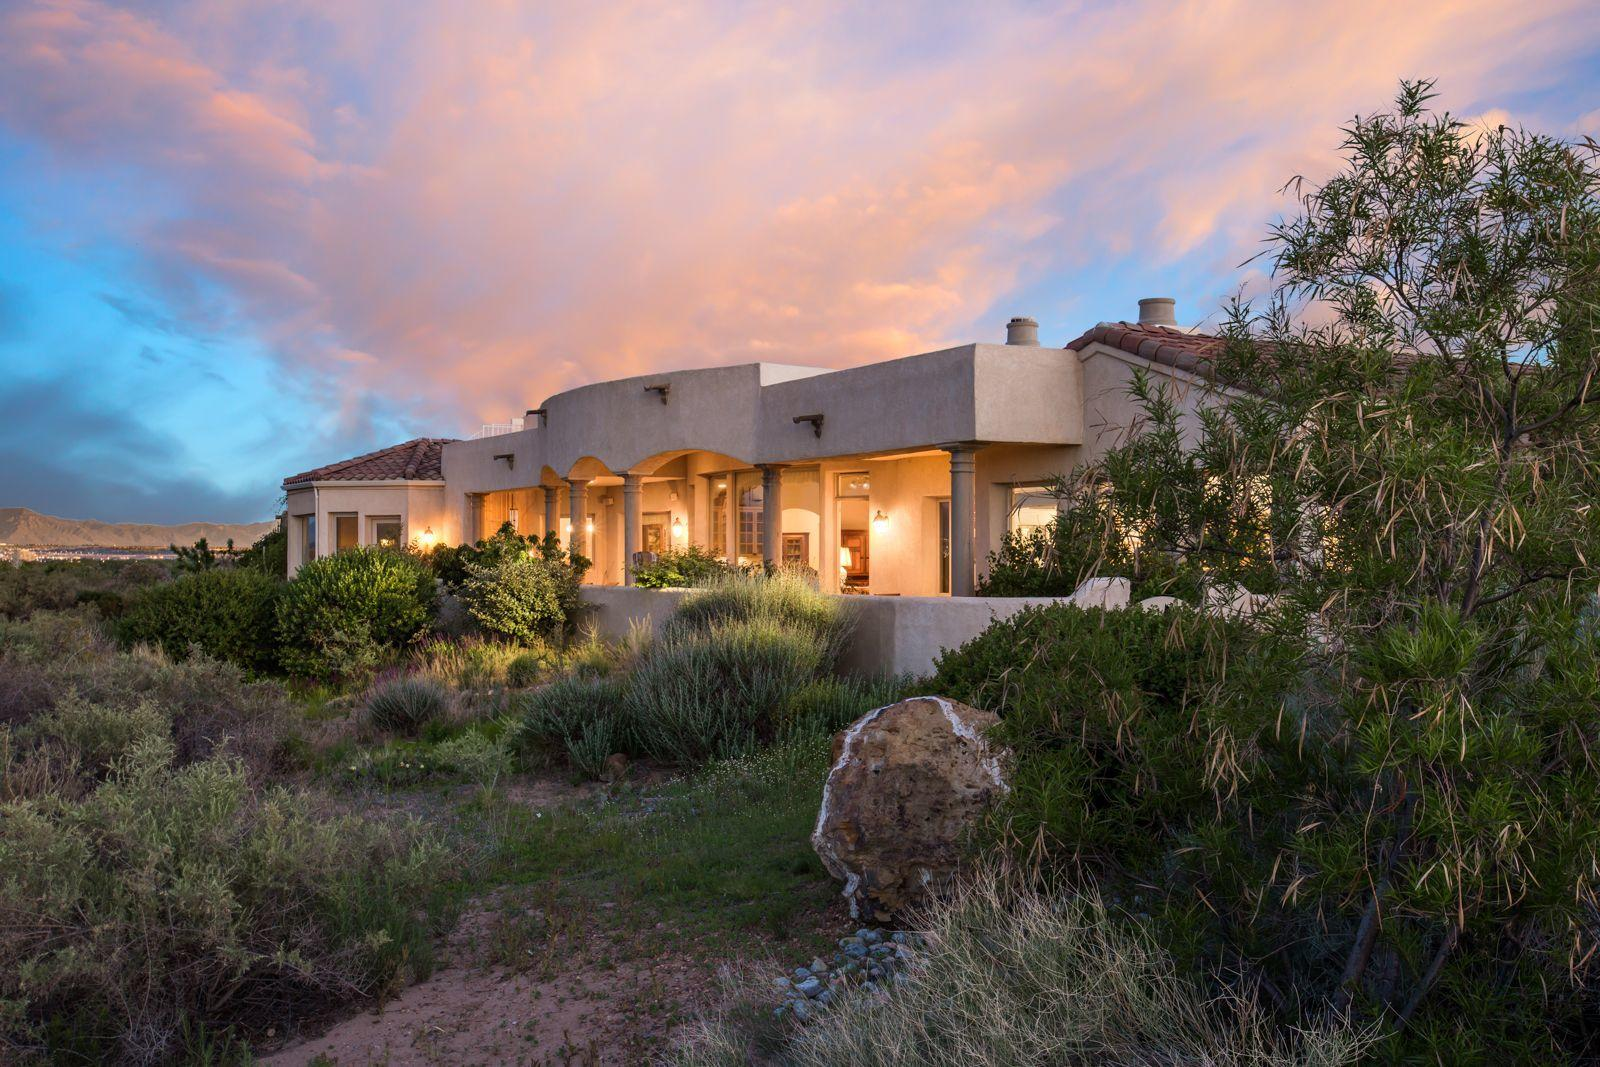 Lovely mission-style home on fabulous view lot in gated Oxbow Bluff.Close to bike and running trails and shopping, the home is designed to showcase the amazing mountain, city and river views. Exquisite details-oversize travertine, tall beamed ceilings and walls of windows, barrel ceiling,stone fireplace, custom doors, crown molding, & gallery hallways to display your art are evidence of quality construction. Chef's kitchen with cherry cabinetry, huge center island w beverage center+steam oven, separate Subzero fridge & freezer,Viking commercial range- opens to family room and dining and both dining areas. Luxurious owner's suite opens to the view patio or a cozy study with fireplace adjacent to the bedroom. Recent roof updates and top of the world roof deck for magical sunsets and sunrises